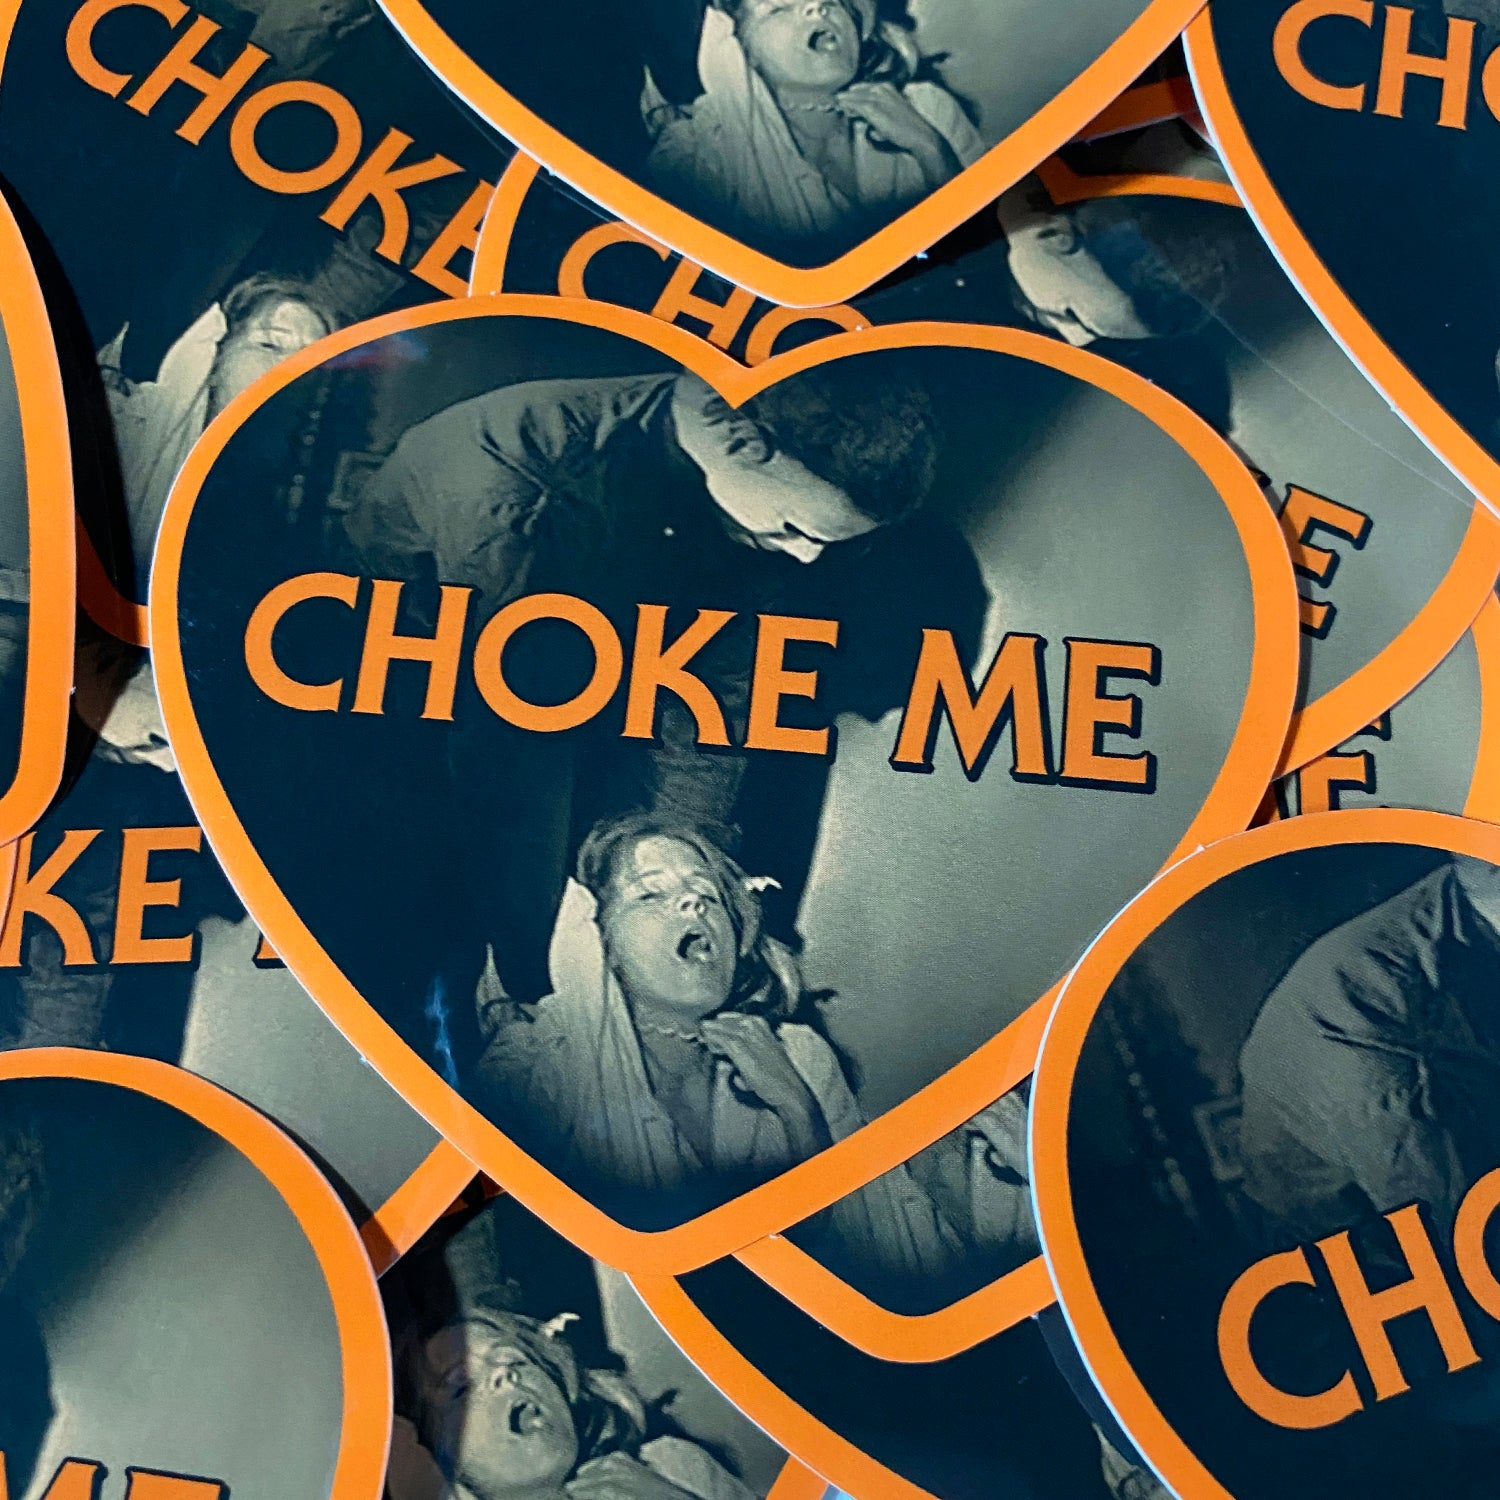 Choke Me Mike - Sticker